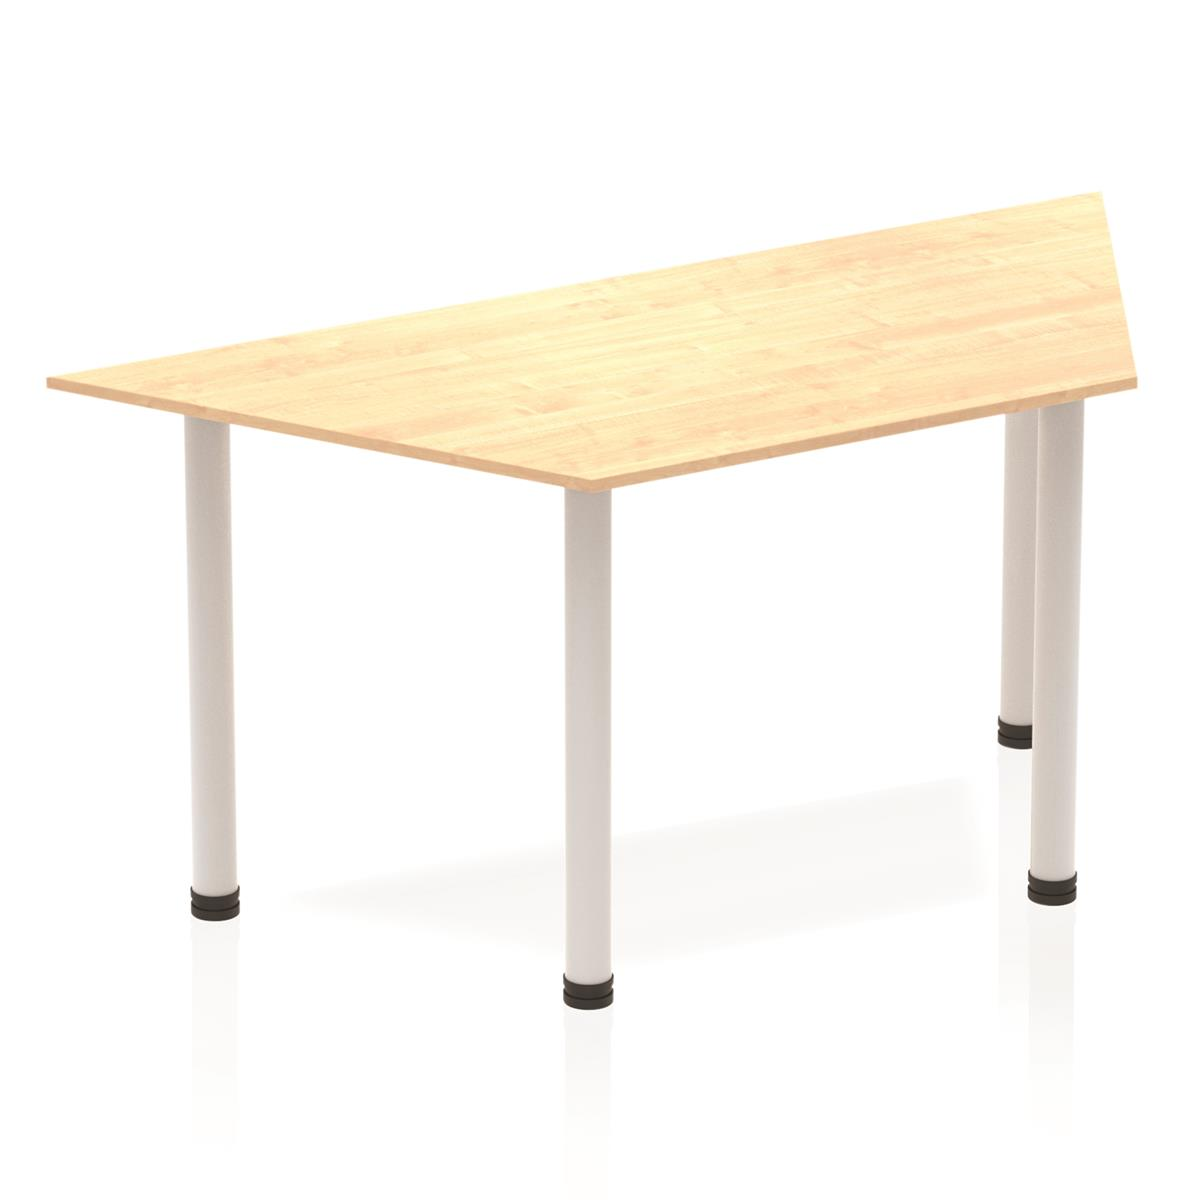 Image for Sonix Trapezium Table Post Leg 1600mm Maple